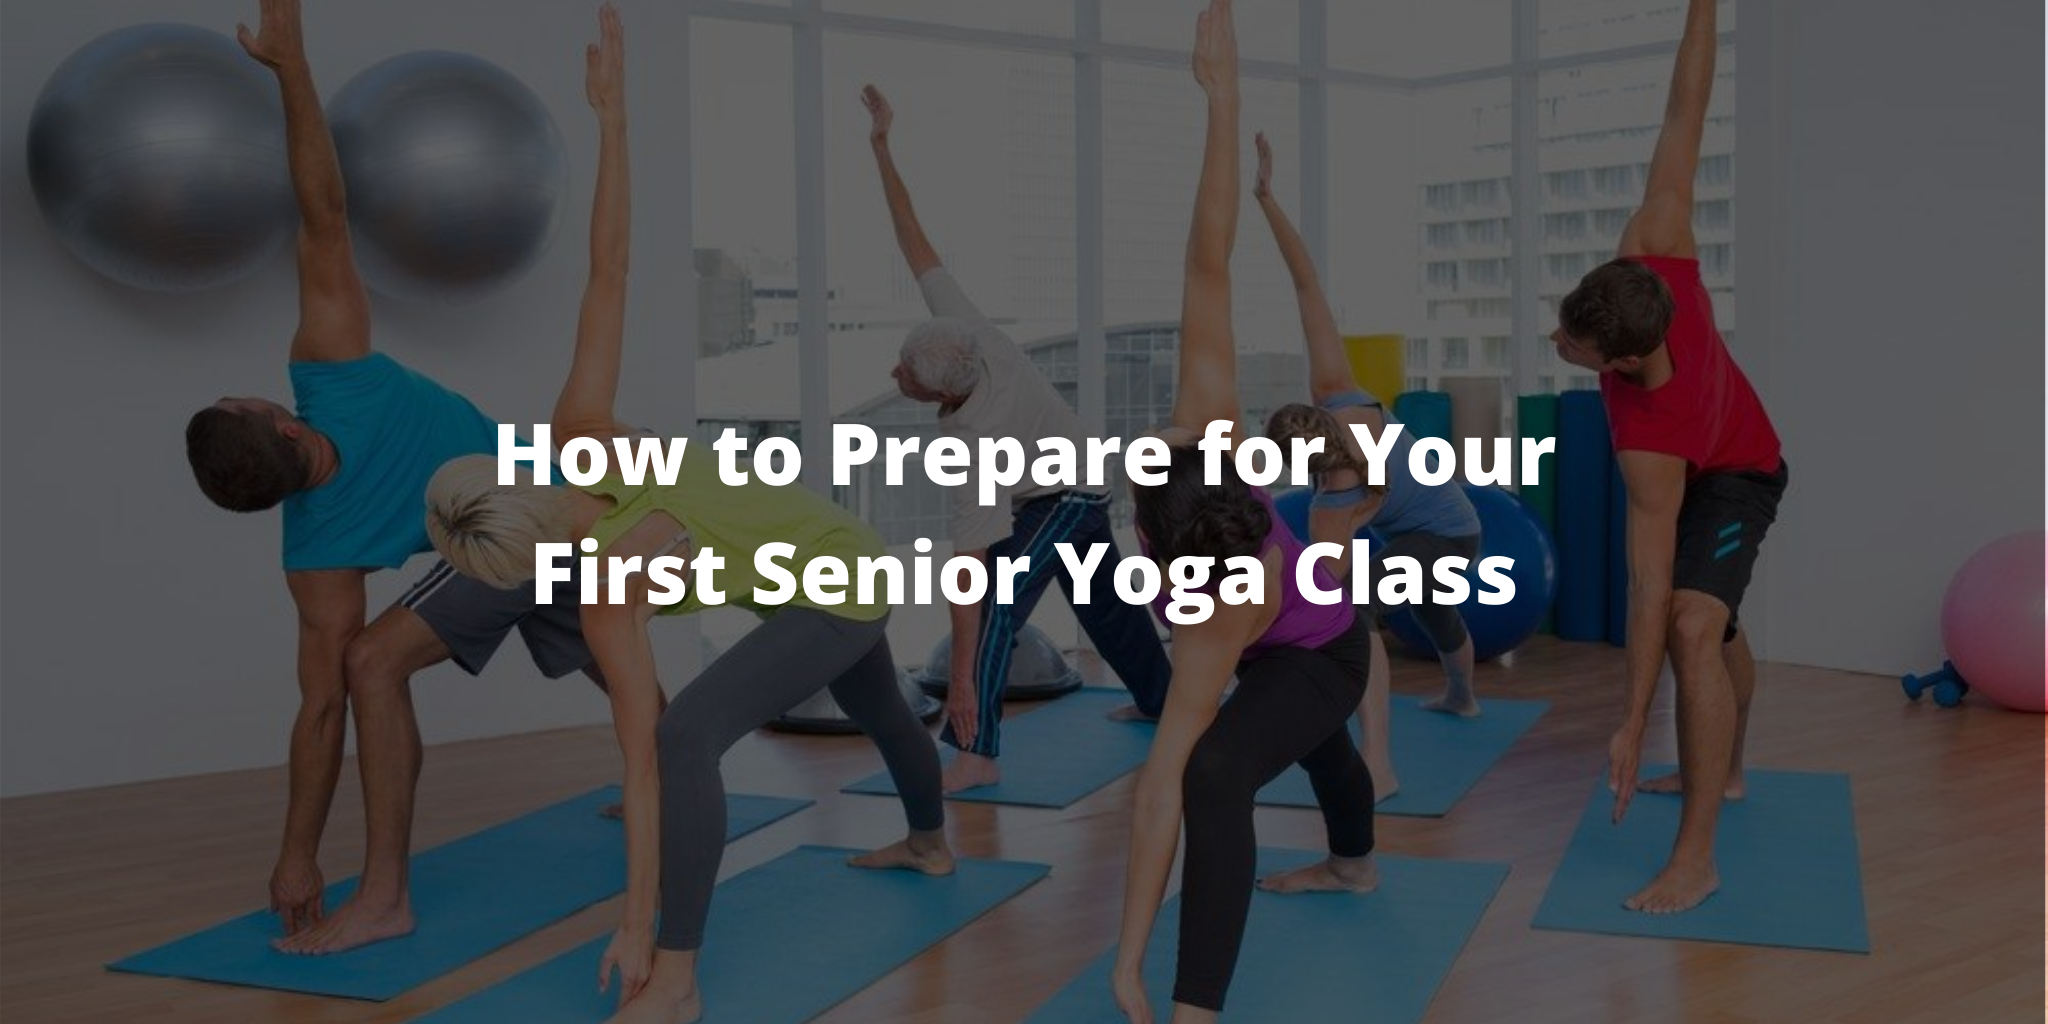 How To Prepare For Your First Senior Yoga Class